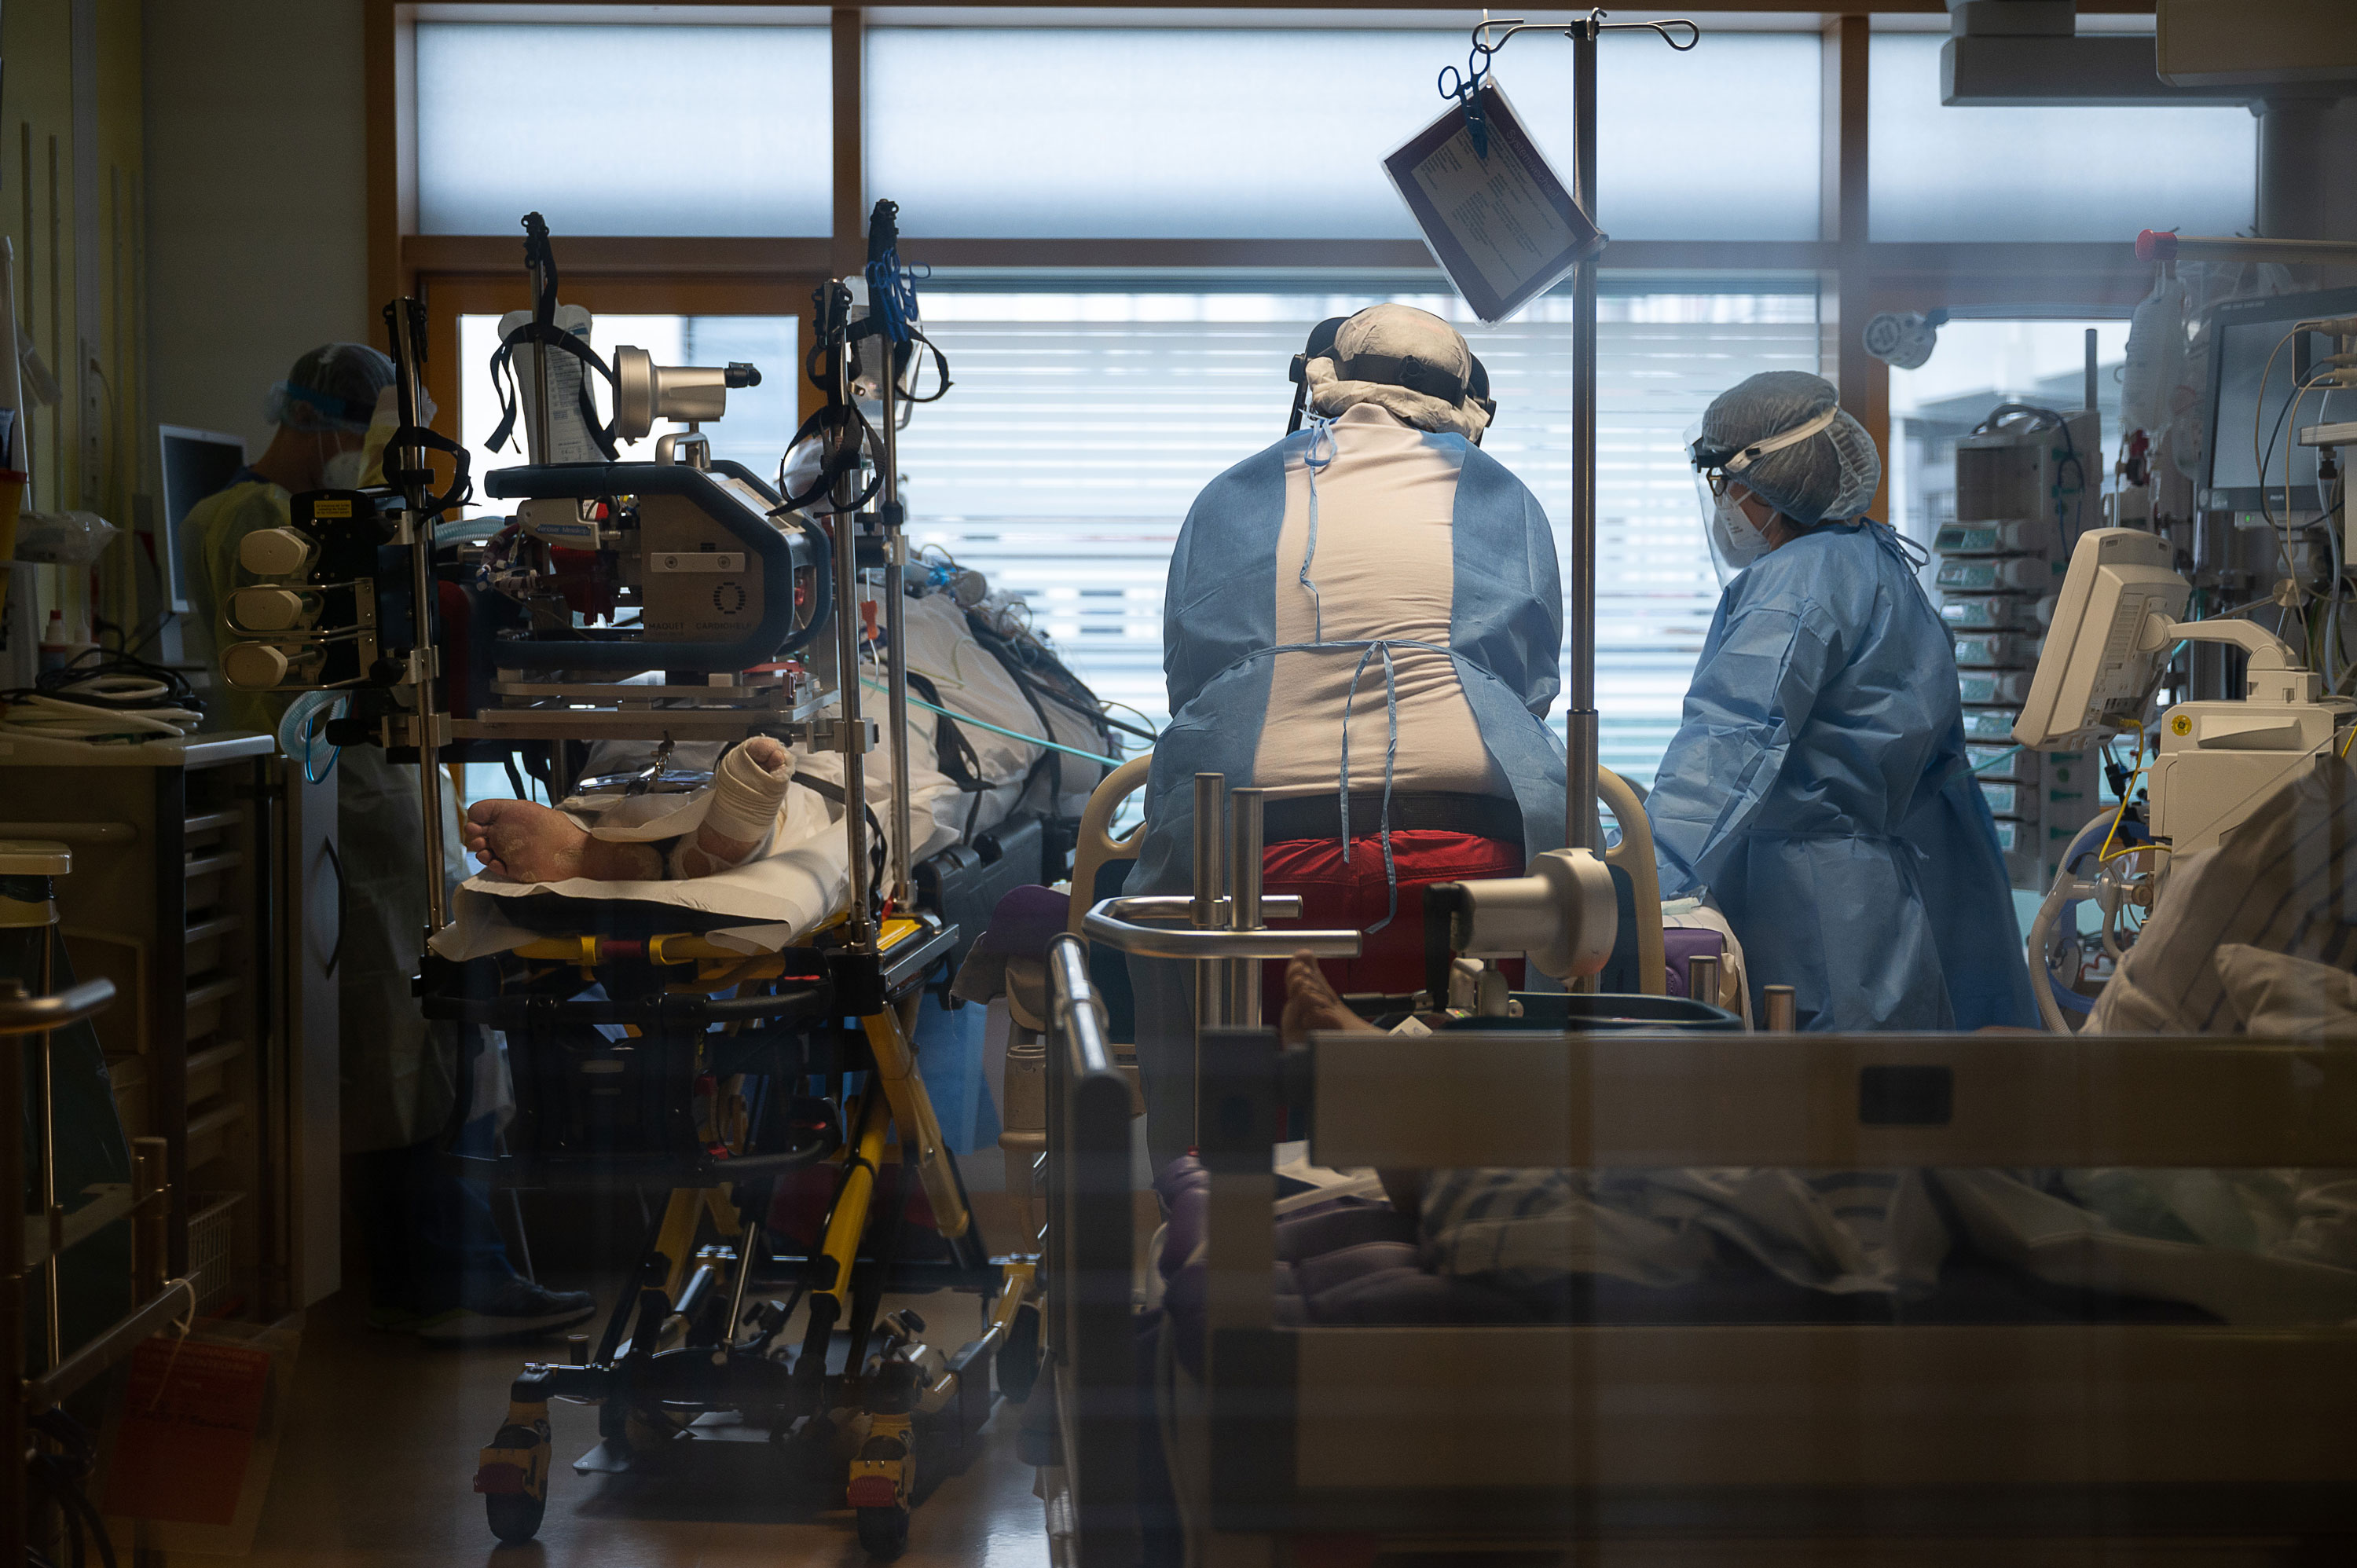 Medical staff take care of a Covid-19 patient in the intensive care unit of a hospital in Ludwigsburg, Germany, on January 8.